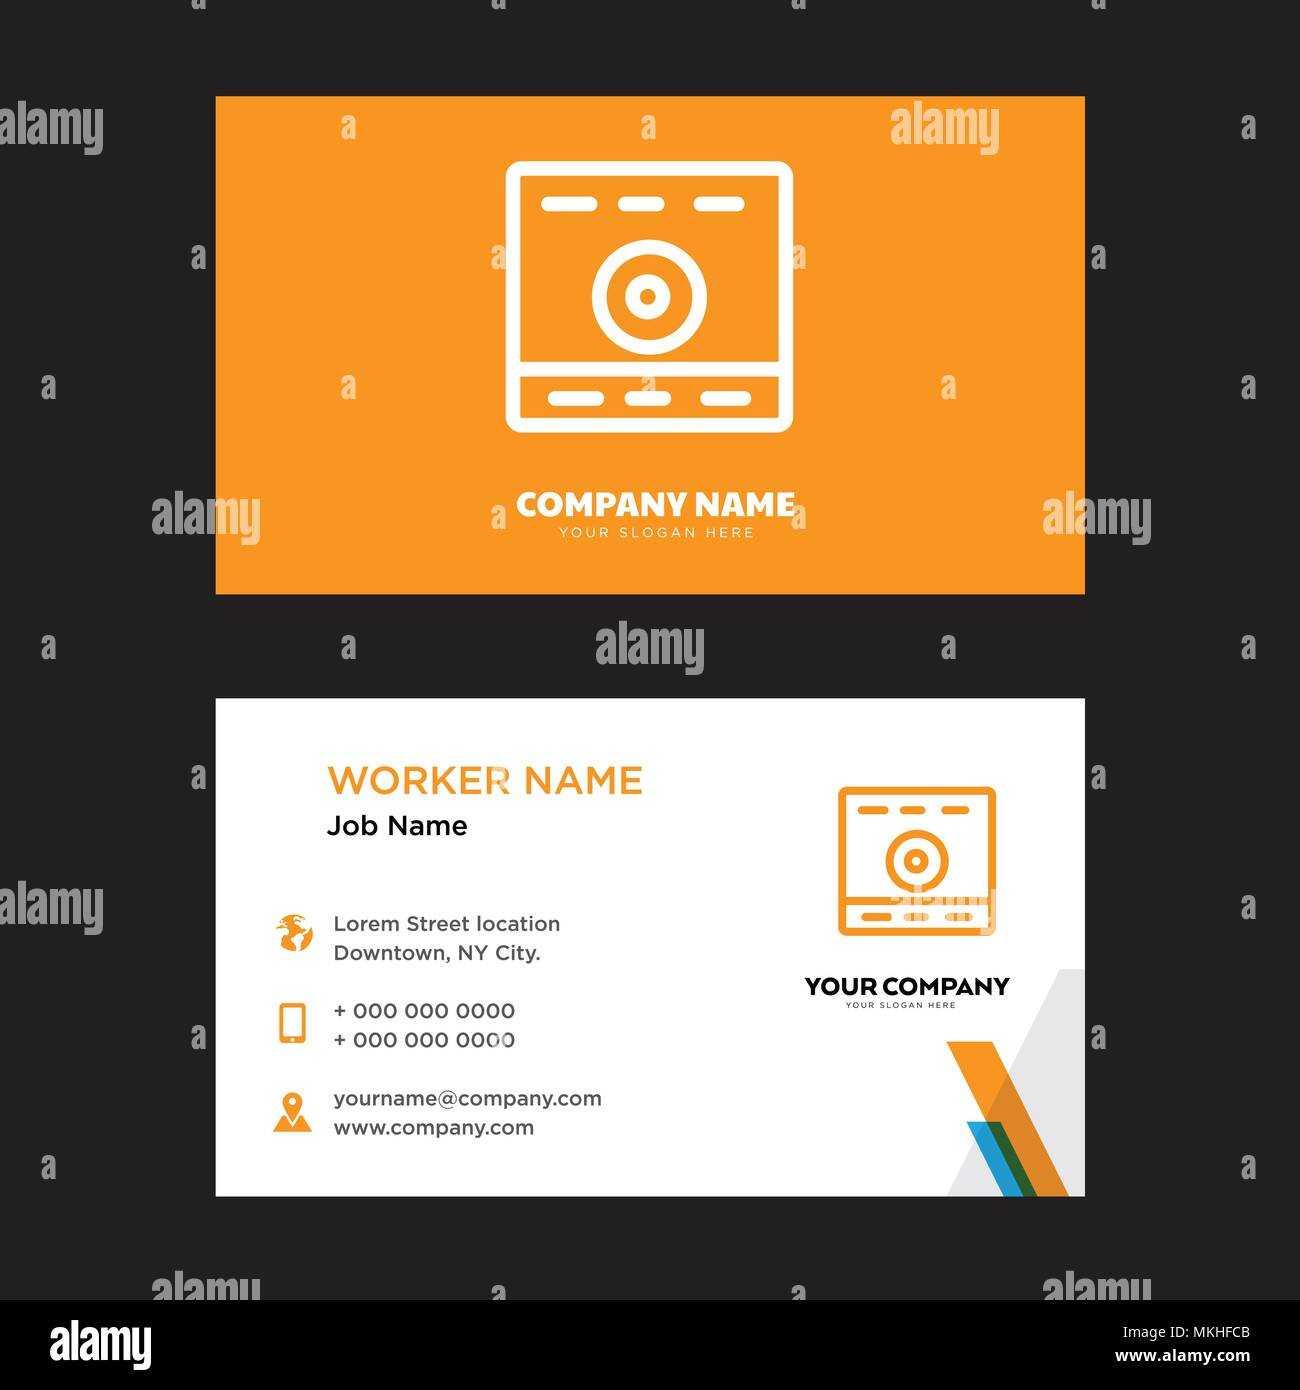 Computer business card design template visiting for your company computer business card design template visiting for your company modern horizontal identity card vector cheaphphosting Image collections